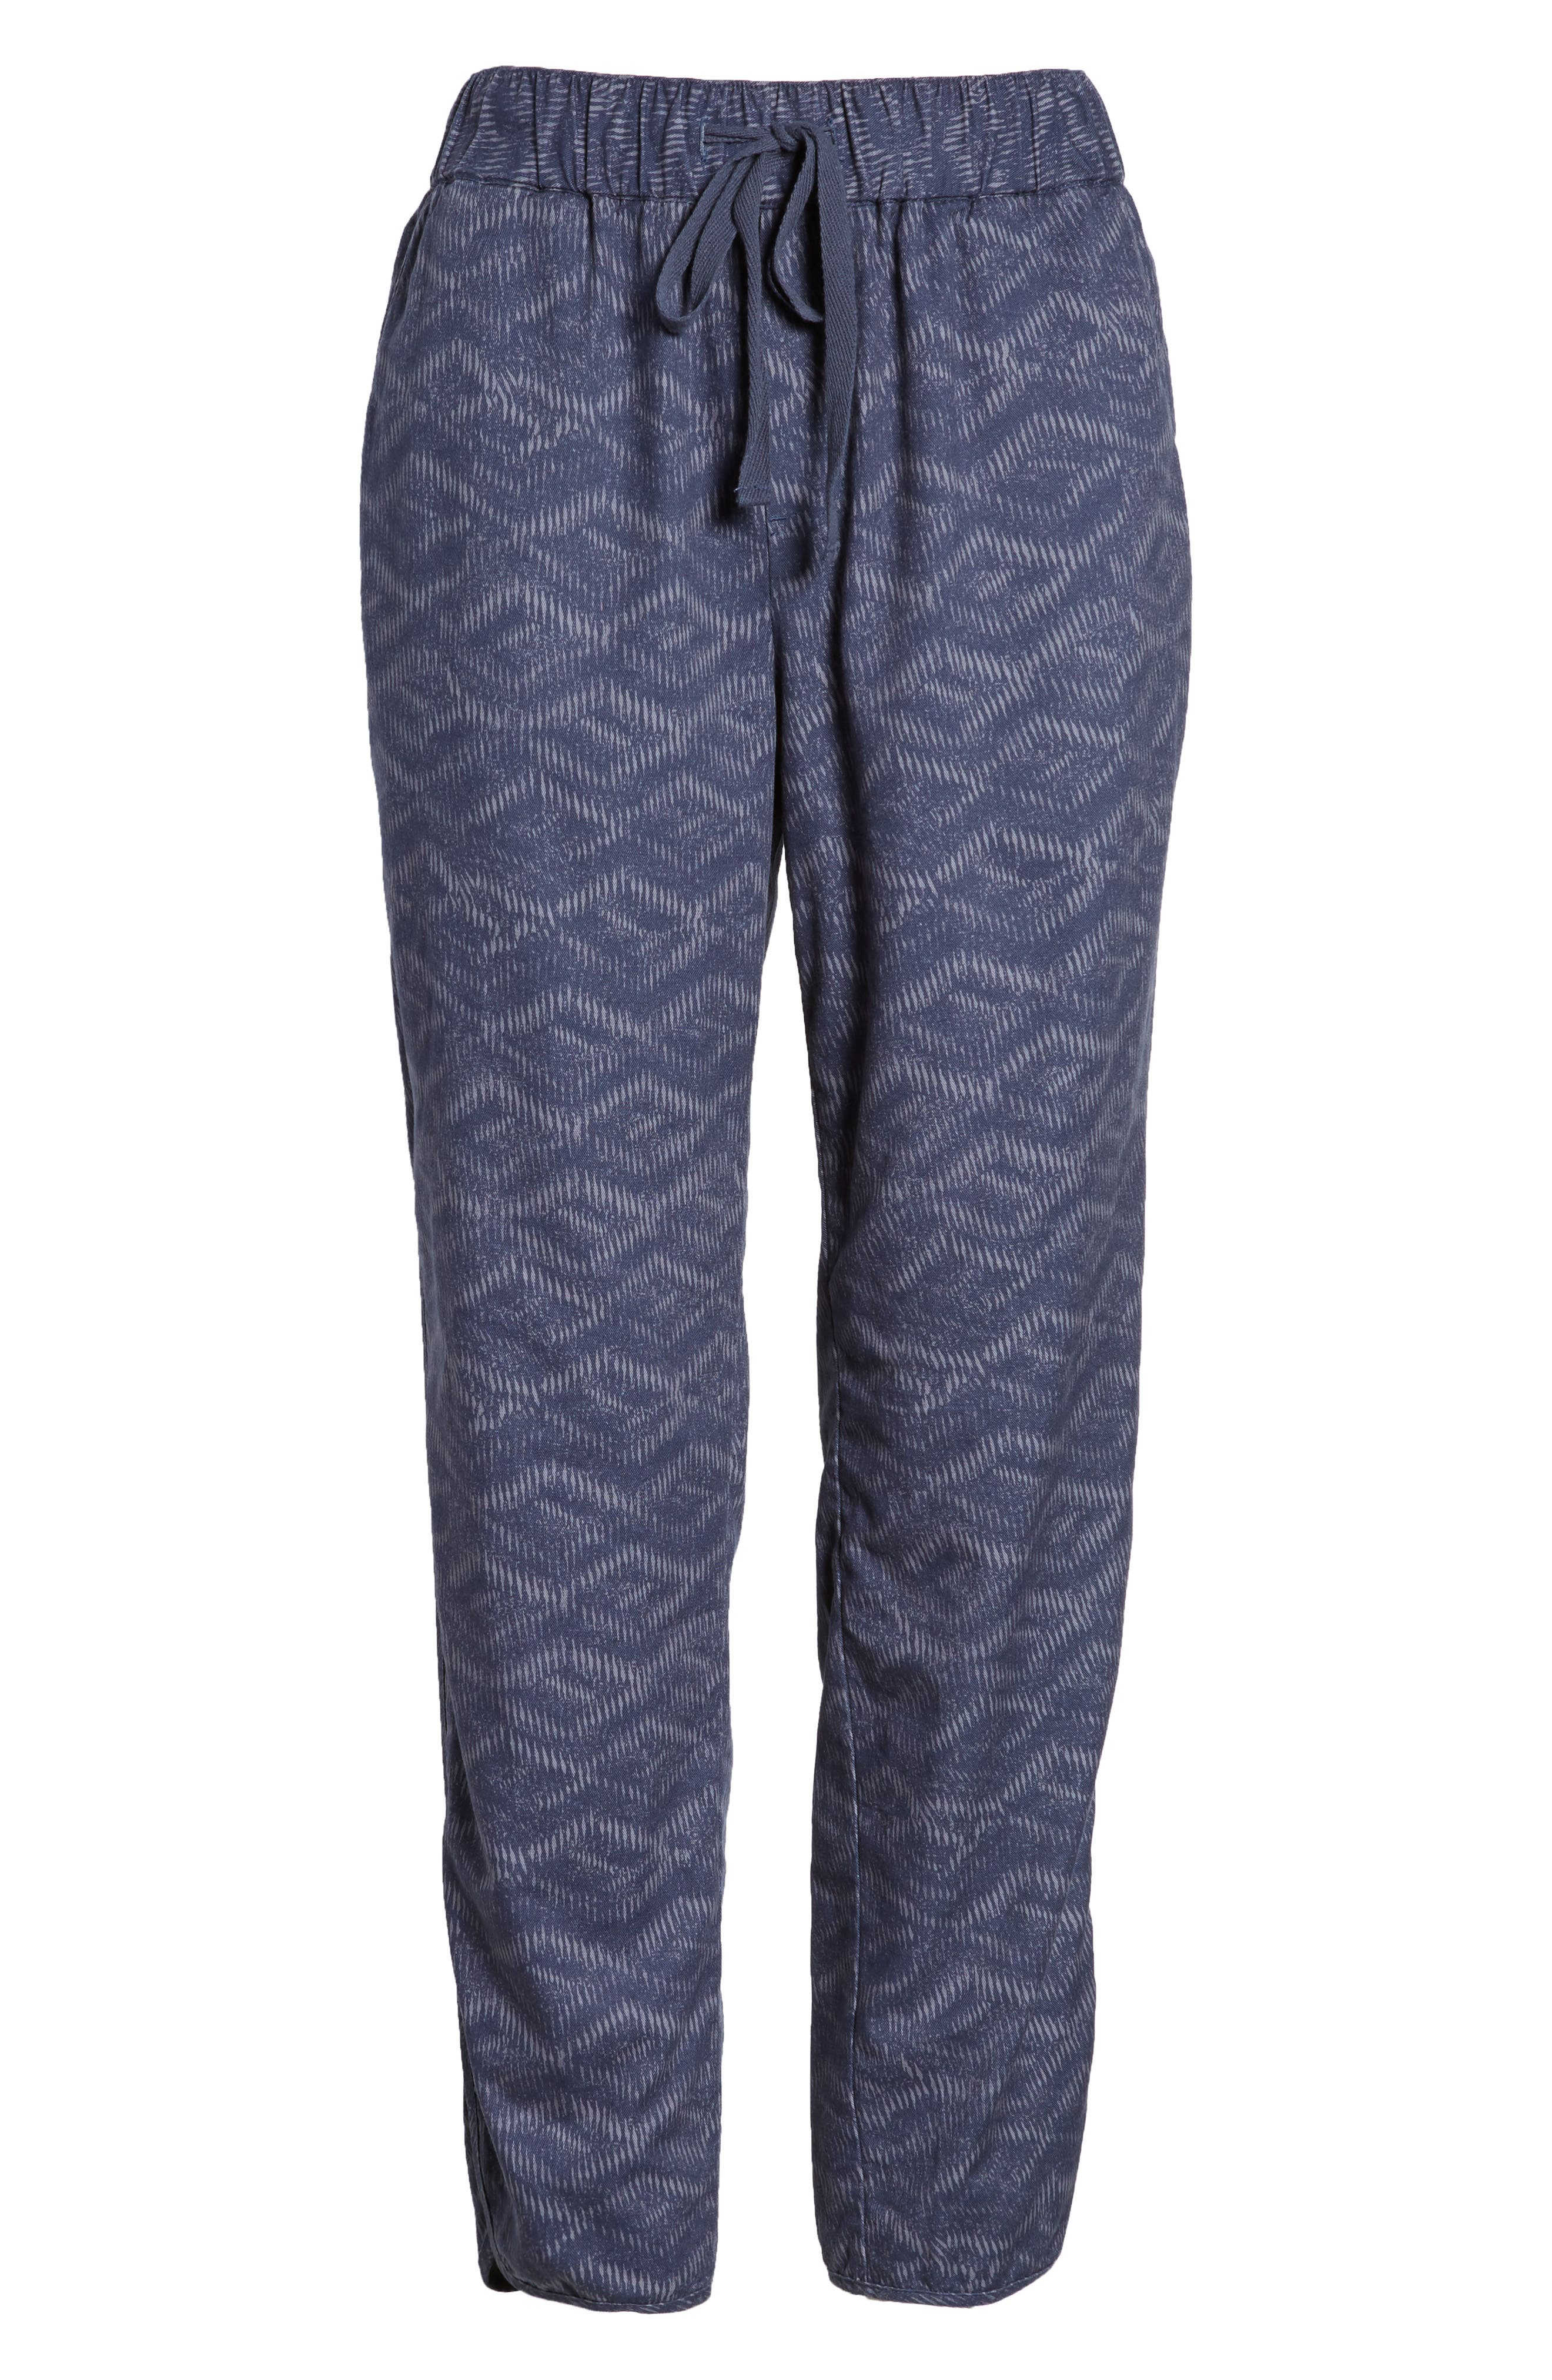 Pattern Cotton Blend Drawstring Pants,                             Alternate thumbnail 7, color,                             401